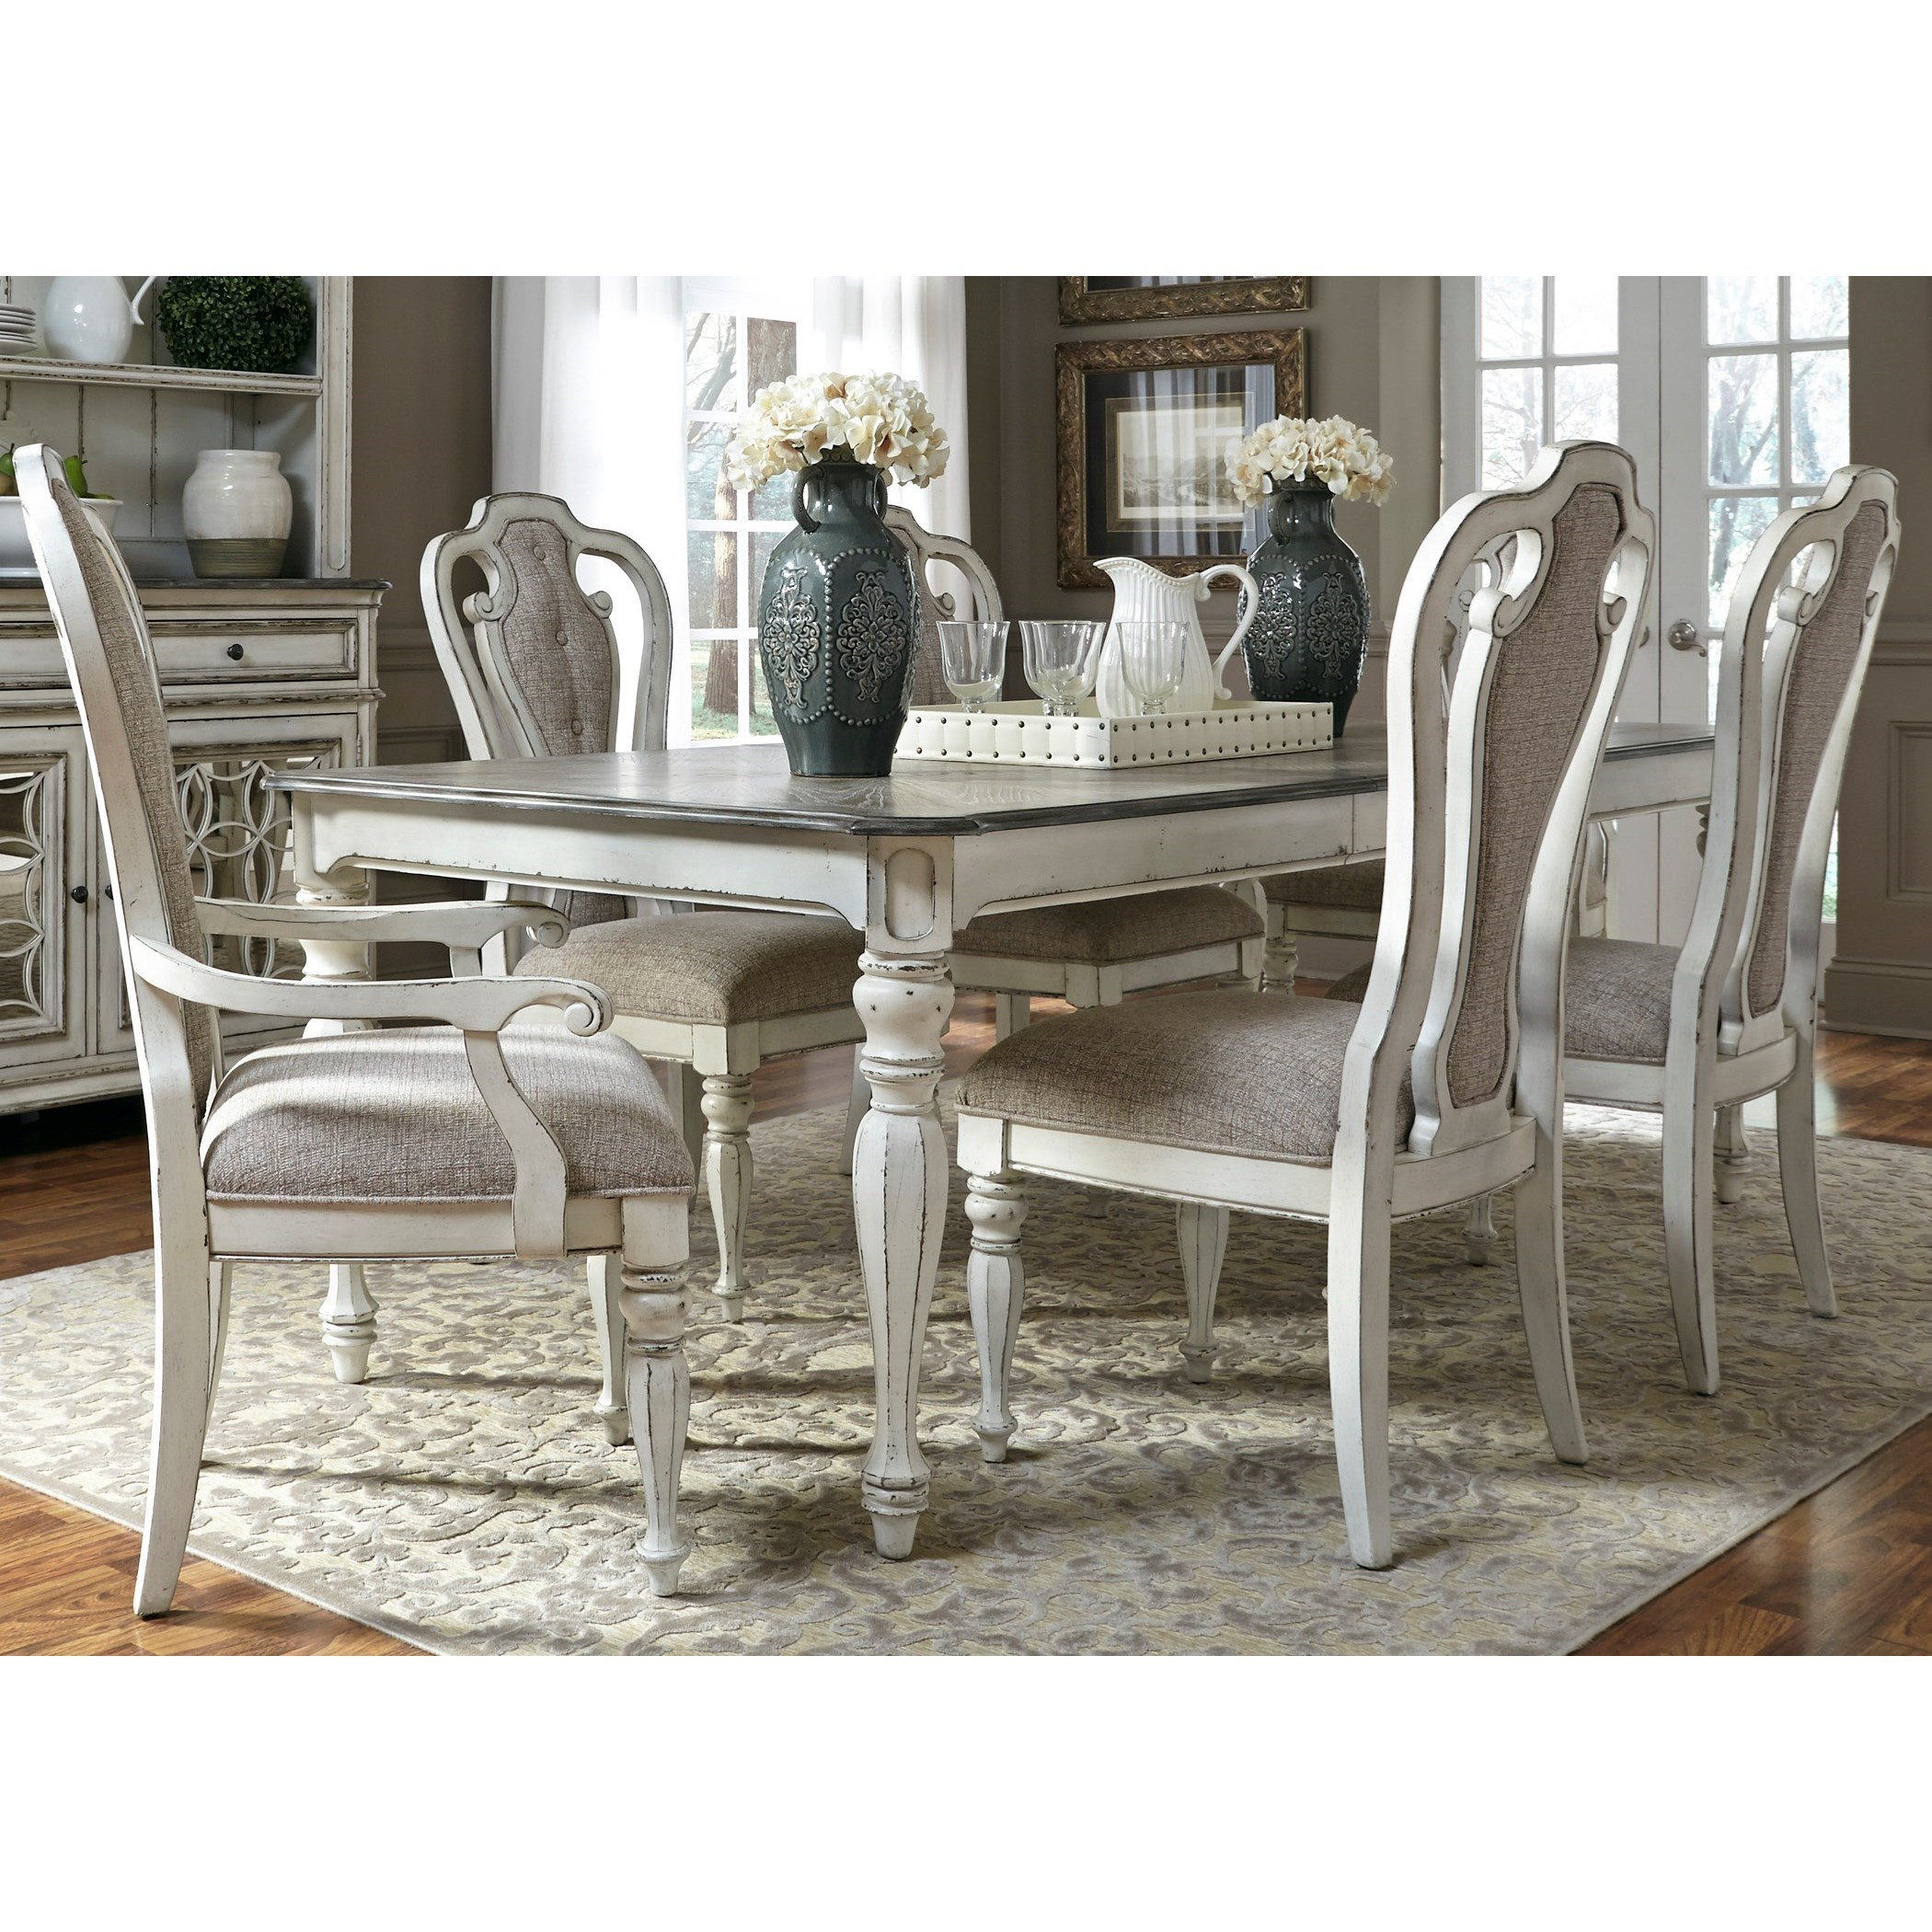 Payless Furniture Store Dining Room Tables: Liberty Furniture Magnolia Manor Dining Splat Back Arm